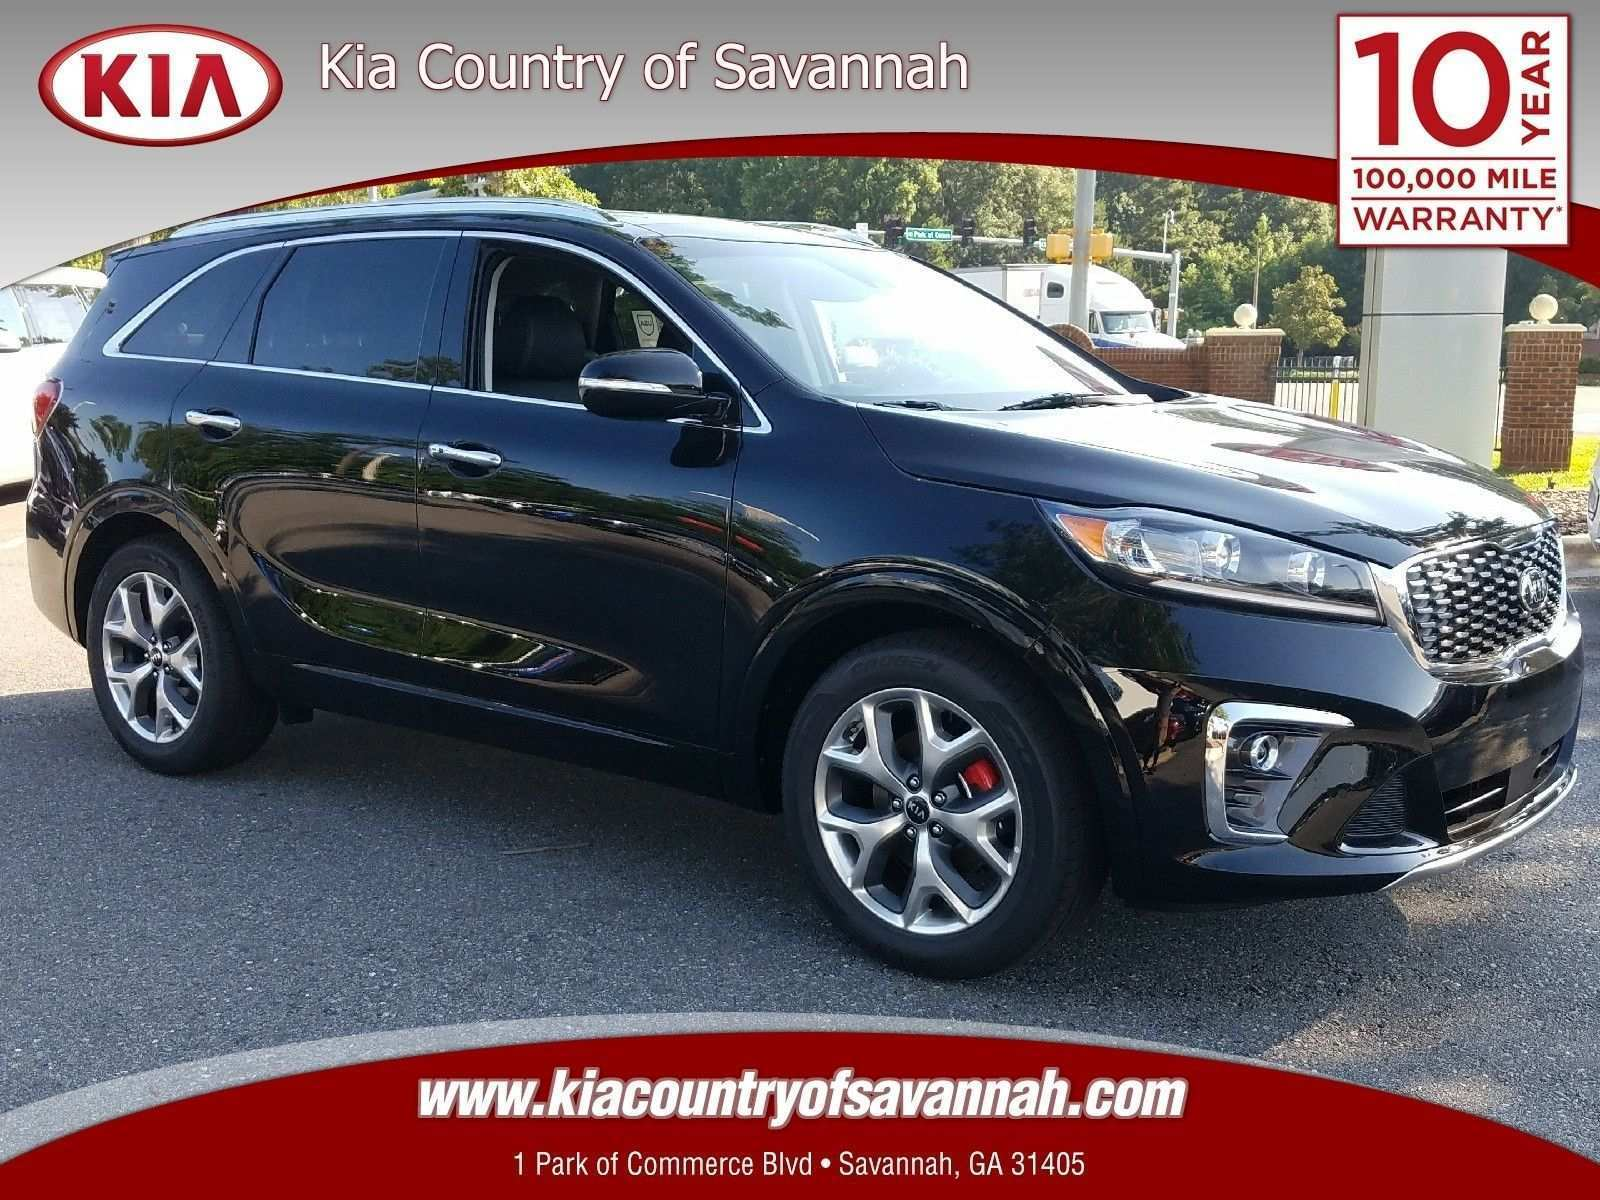 99 Gallery of 2019 Kia Sorento Warranty New Concept Ratings for 2019 Kia Sorento Warranty New Concept